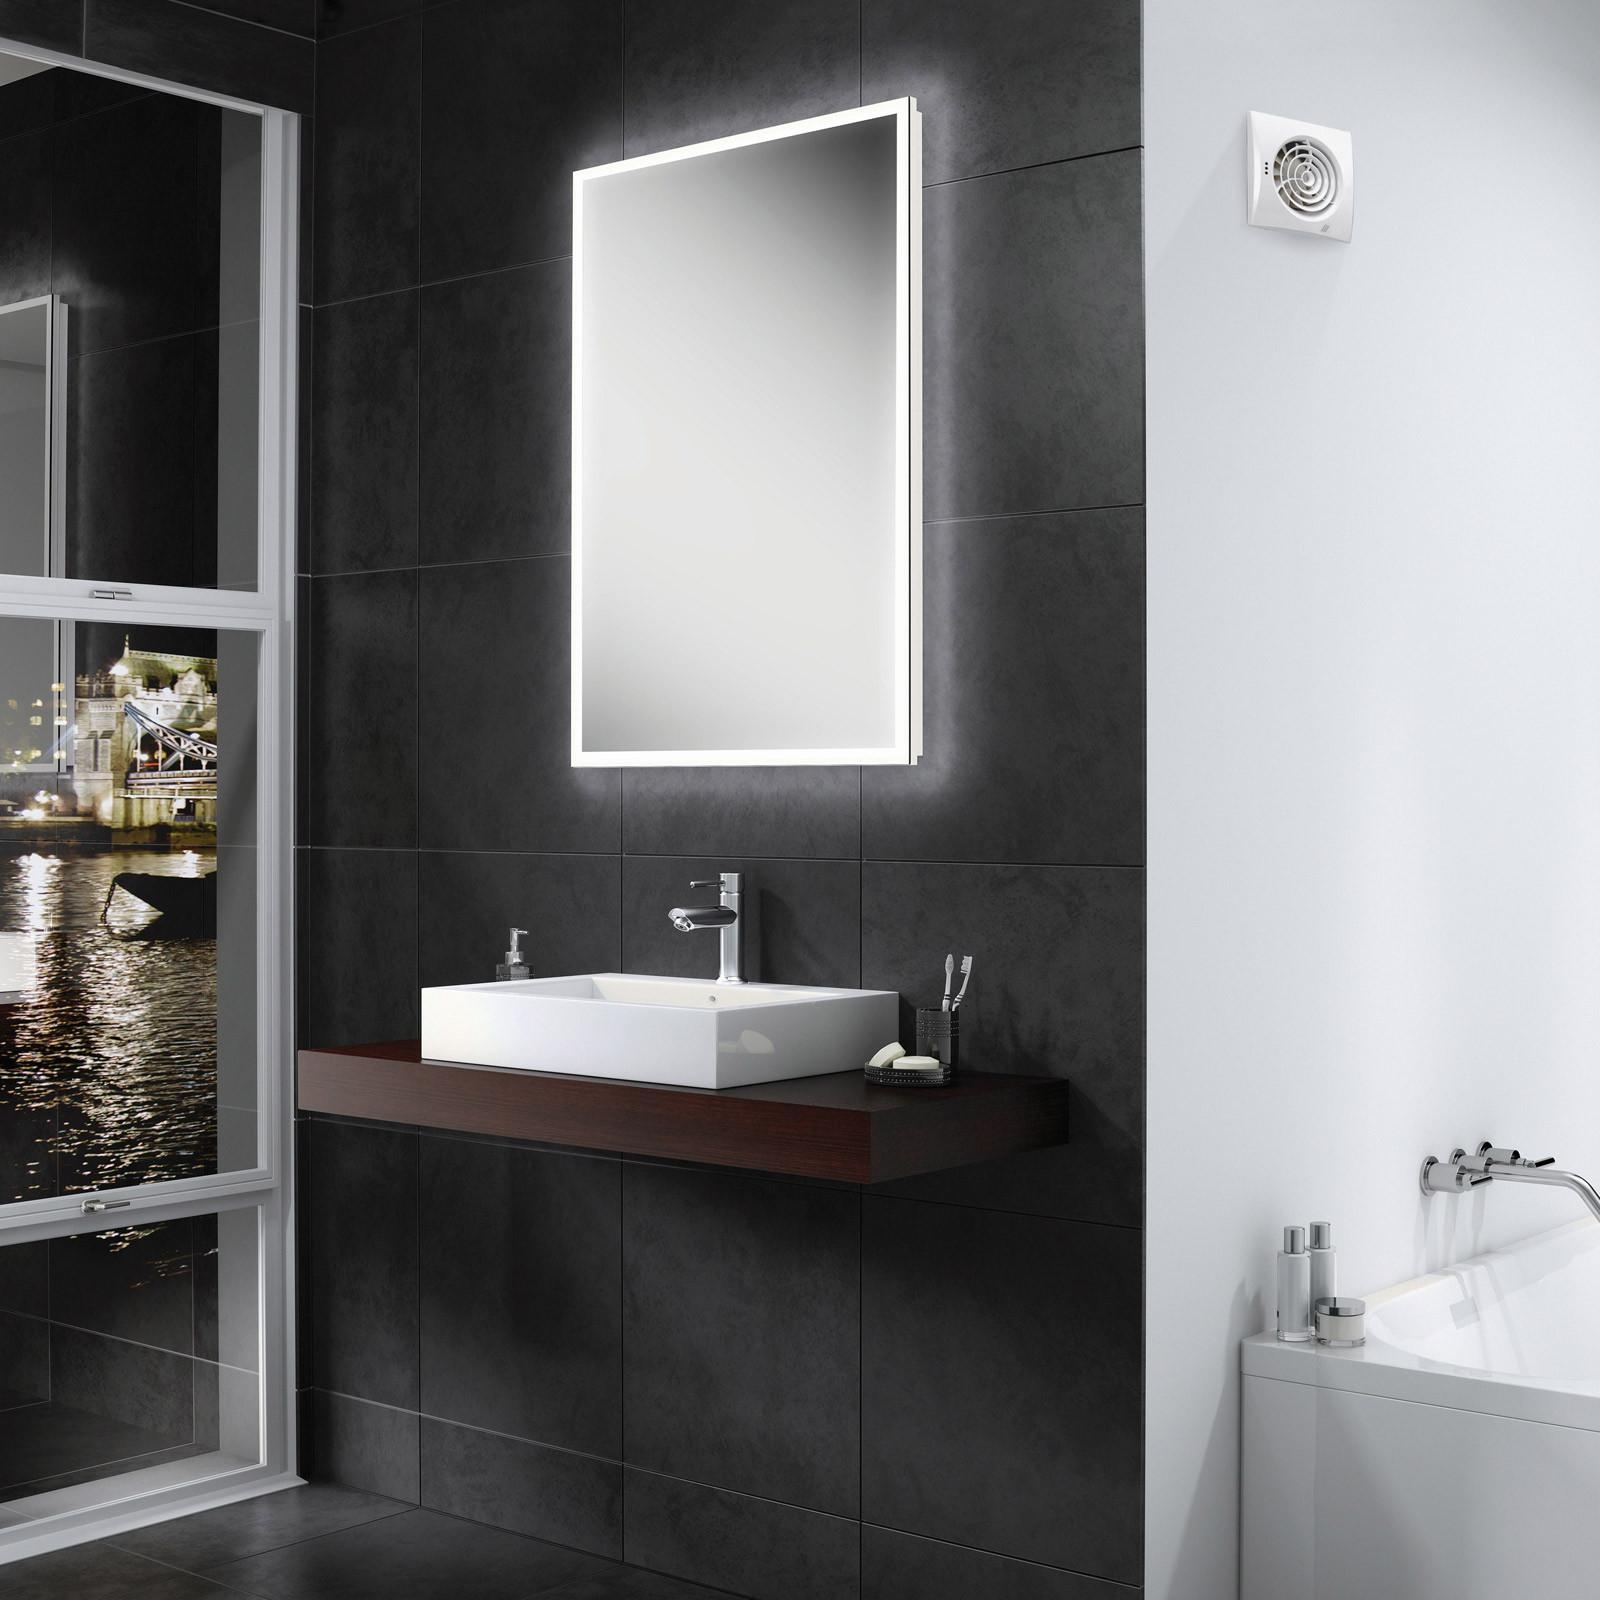 20 Best Collection of Custom Mirrors for Sale  Mirror Ideas